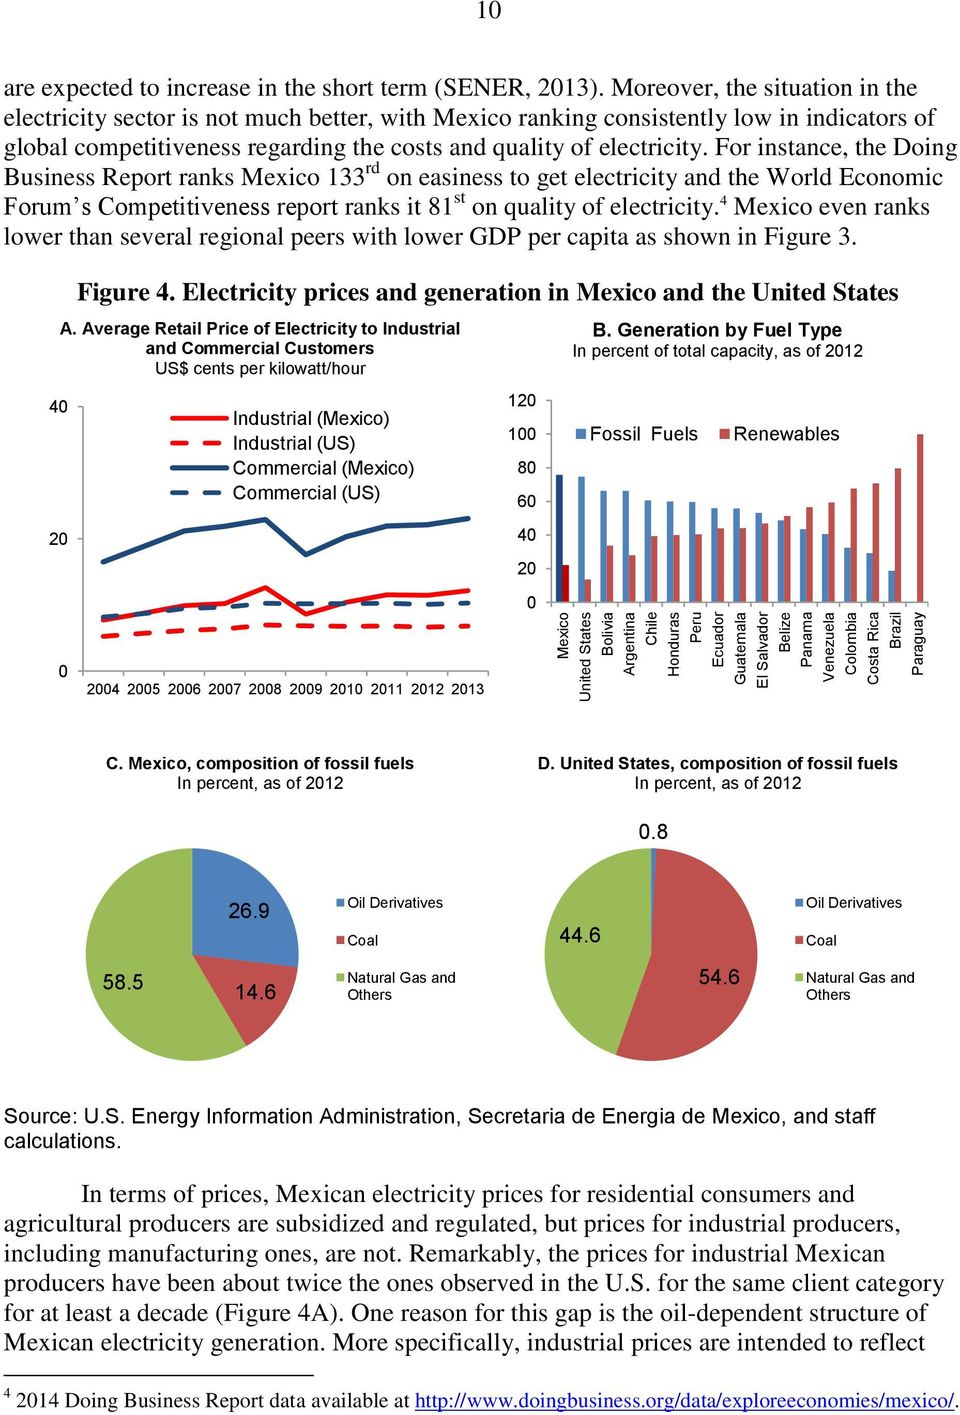 Moreover, the situation in the electricity sector is not much better, with Mexico ranking consistently low in indicators of global competitiveness regarding the costs and quality of electricity.